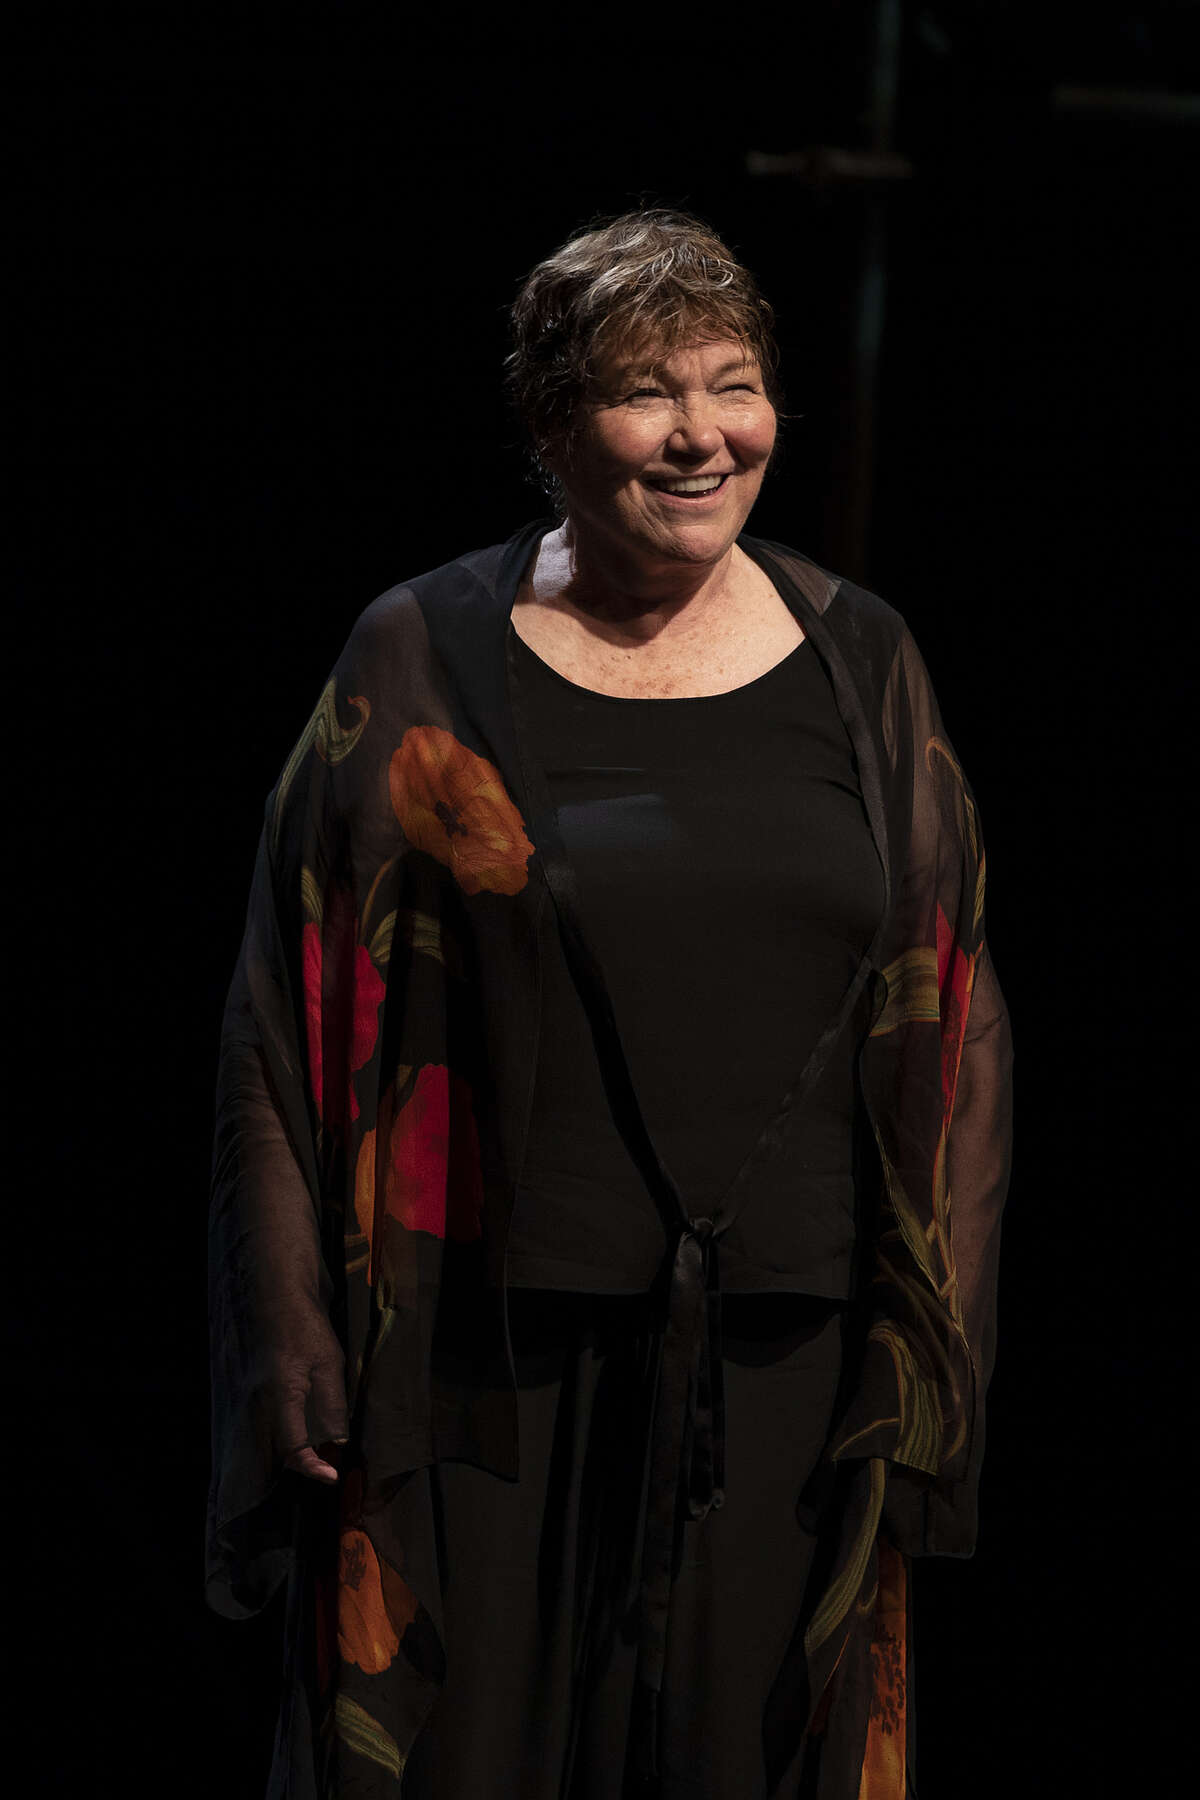 """Tina Packer, founder of Shakespeare & Company in Lenox, Mass., will direct Kenneth Lonergan's """"The Waverly Gallery"""" at the company this summer.(Provided photo by Christina Lane.)"""